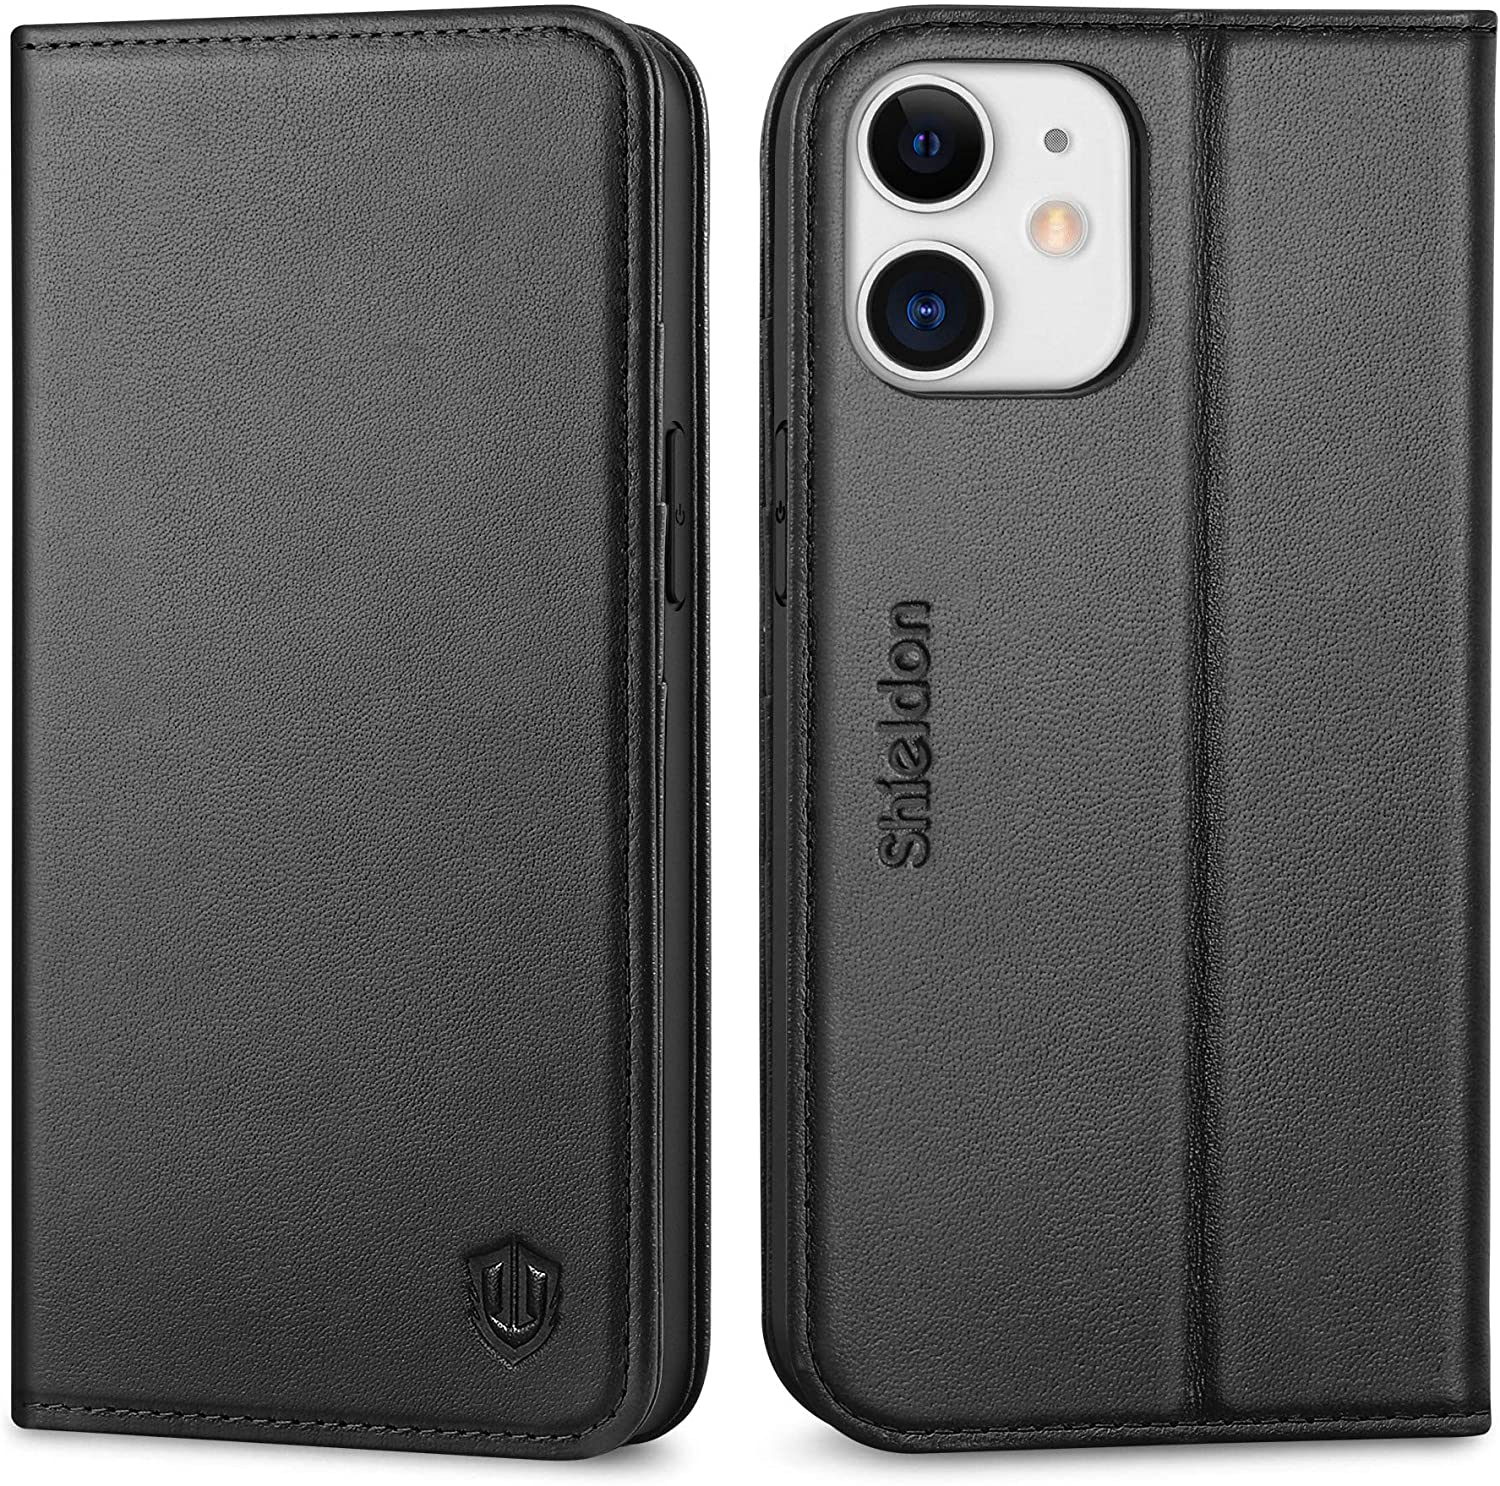 SHIELDON Case for iPhone 12 Mini 5G Genuine Leather Wallet Flip Magnetic Cover RFID Blocking Credit Card Holder Kickstand TPU Shockproof Case Compatible with iPhone 12 Mini 5G (5.4 Inch, 2020) - Black